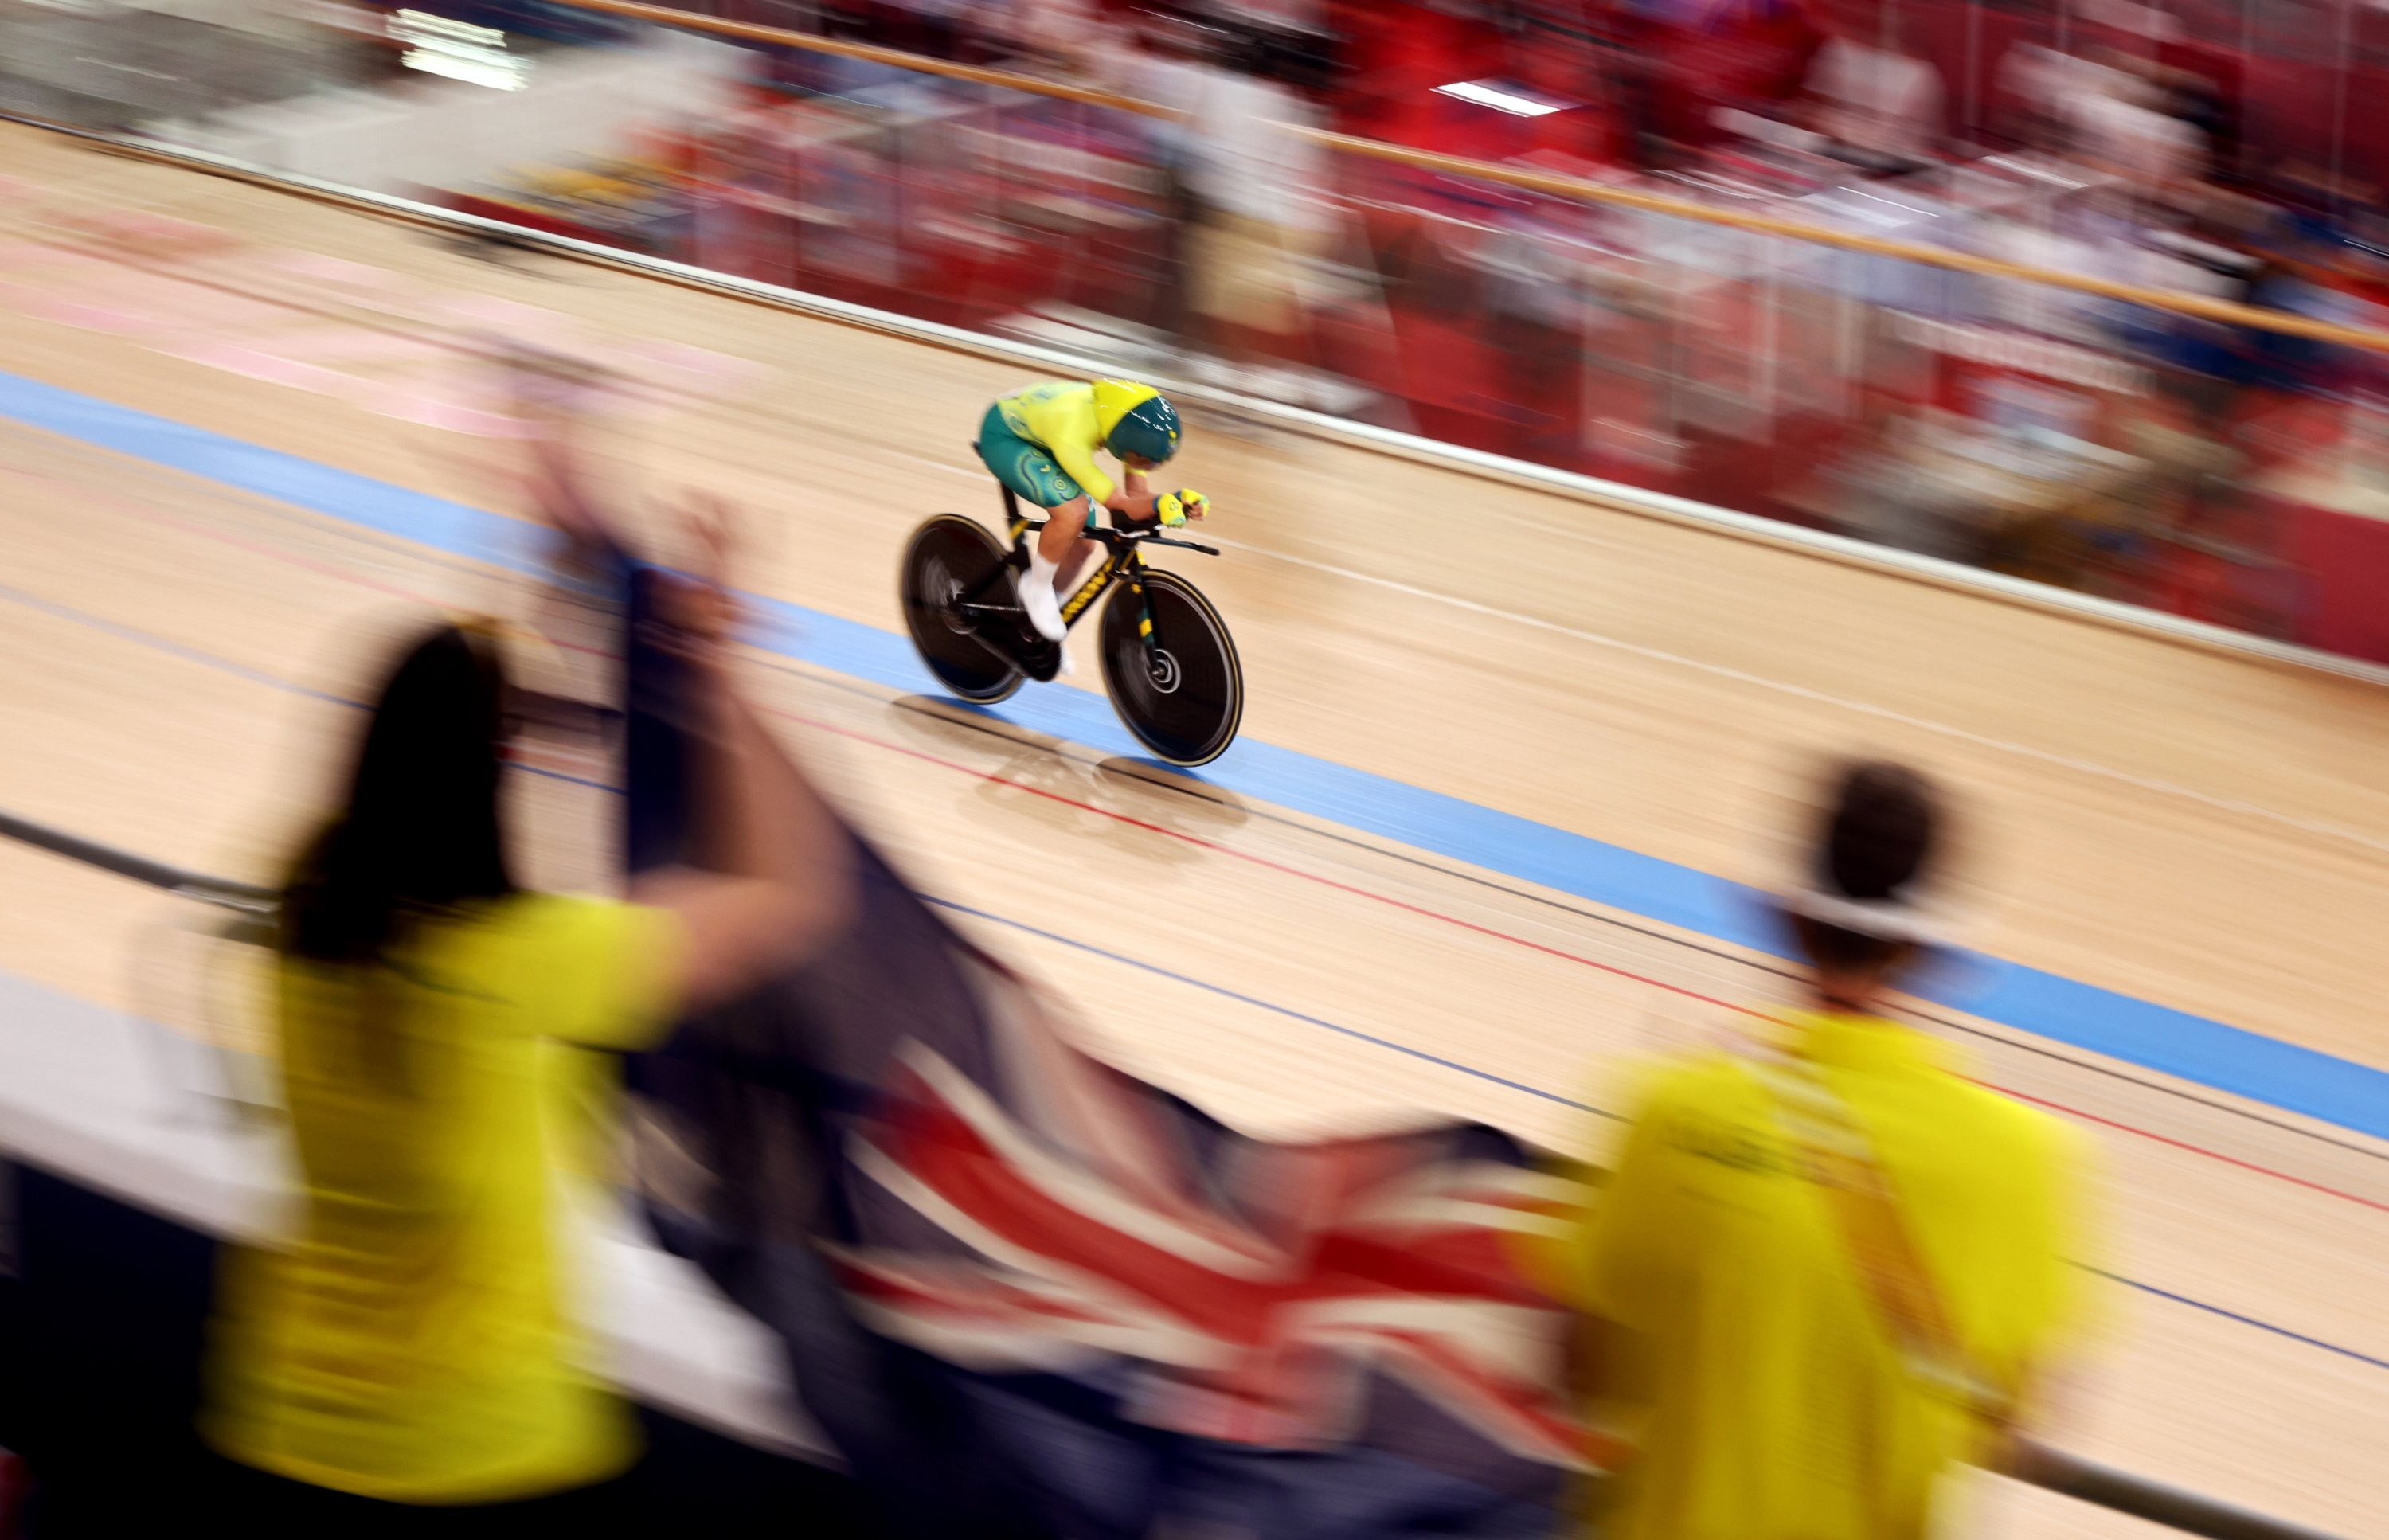 Australia's Paige Greco sets a new world record in the Tokyo 2020 Paralympic Games track cycling women's 3000-meter Individual Pursuit Qualifying at the Izu Velodrome, Shizuoka, Japan, Aug. 25, 2021. (Reuters Photo)